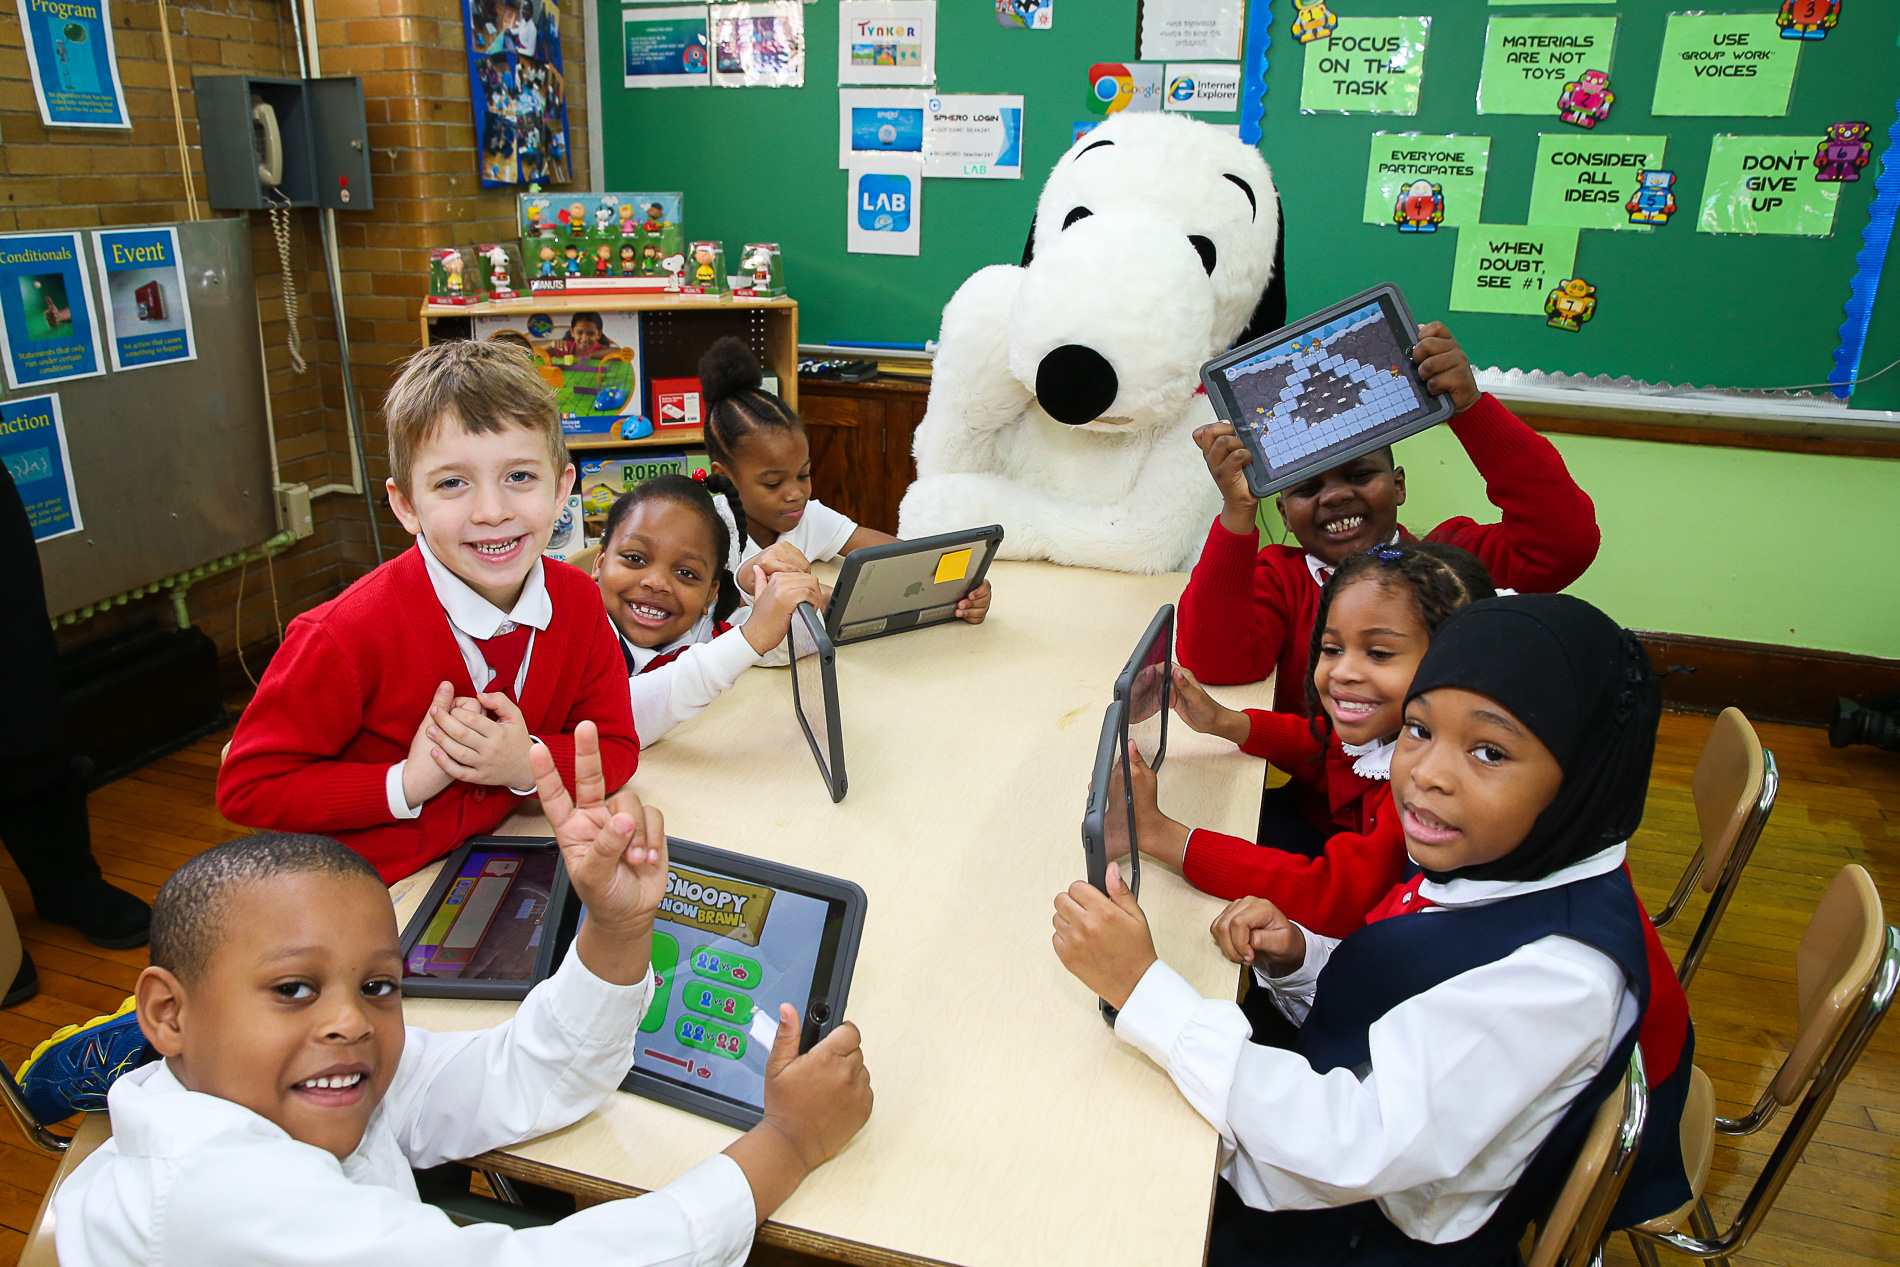 Snoopy Kicks off Hour of Code @ PS 241 in Brooklyn